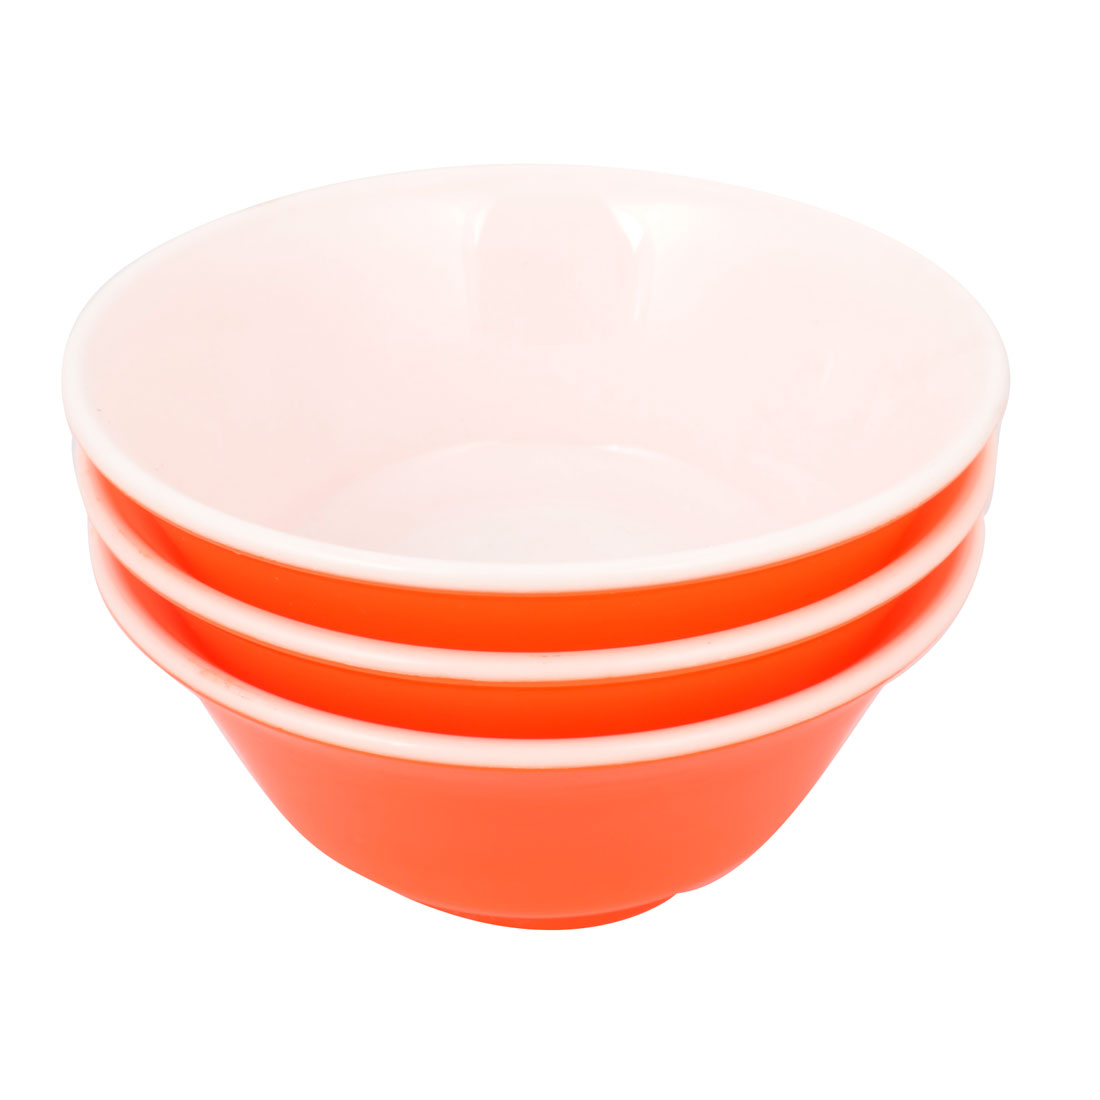 3 Pcs Kitchen Orange Red White Plastic Rice Bowl Food Container